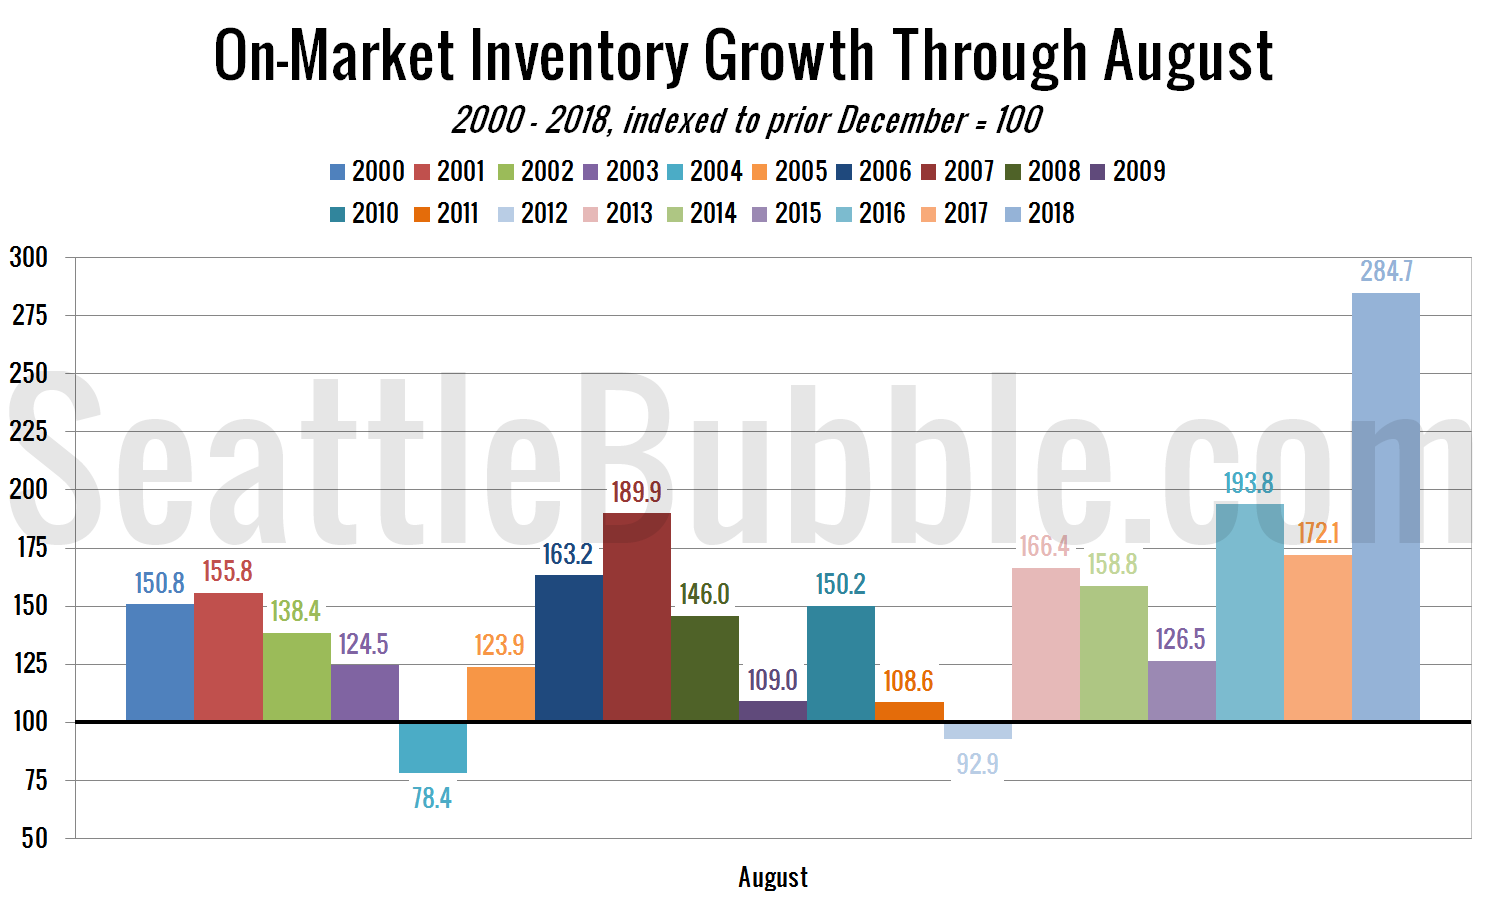 On-Market Inventory Growth Through August